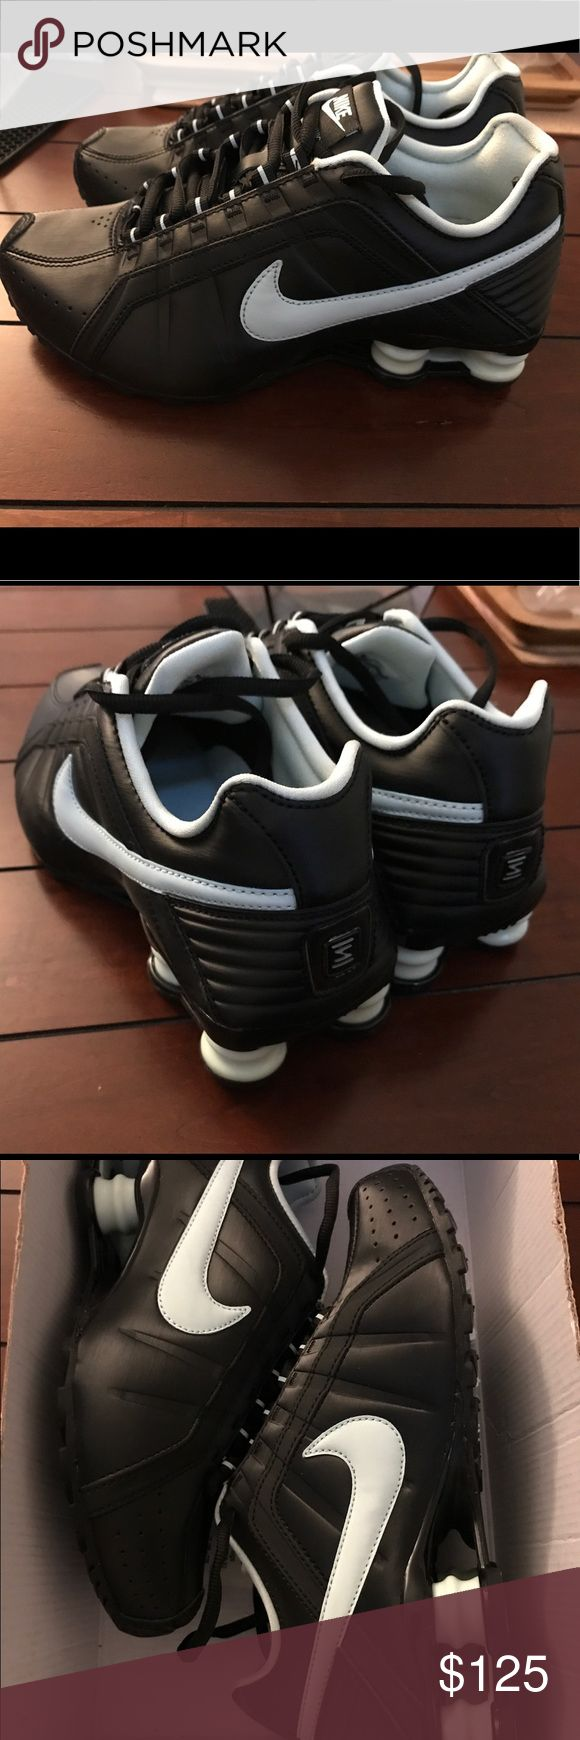 sneakers for cheap 6cdb2 08fa7 Nike Shox Junior Black Teal Mint 454339 007 Built to last, the stylish  upper features ...